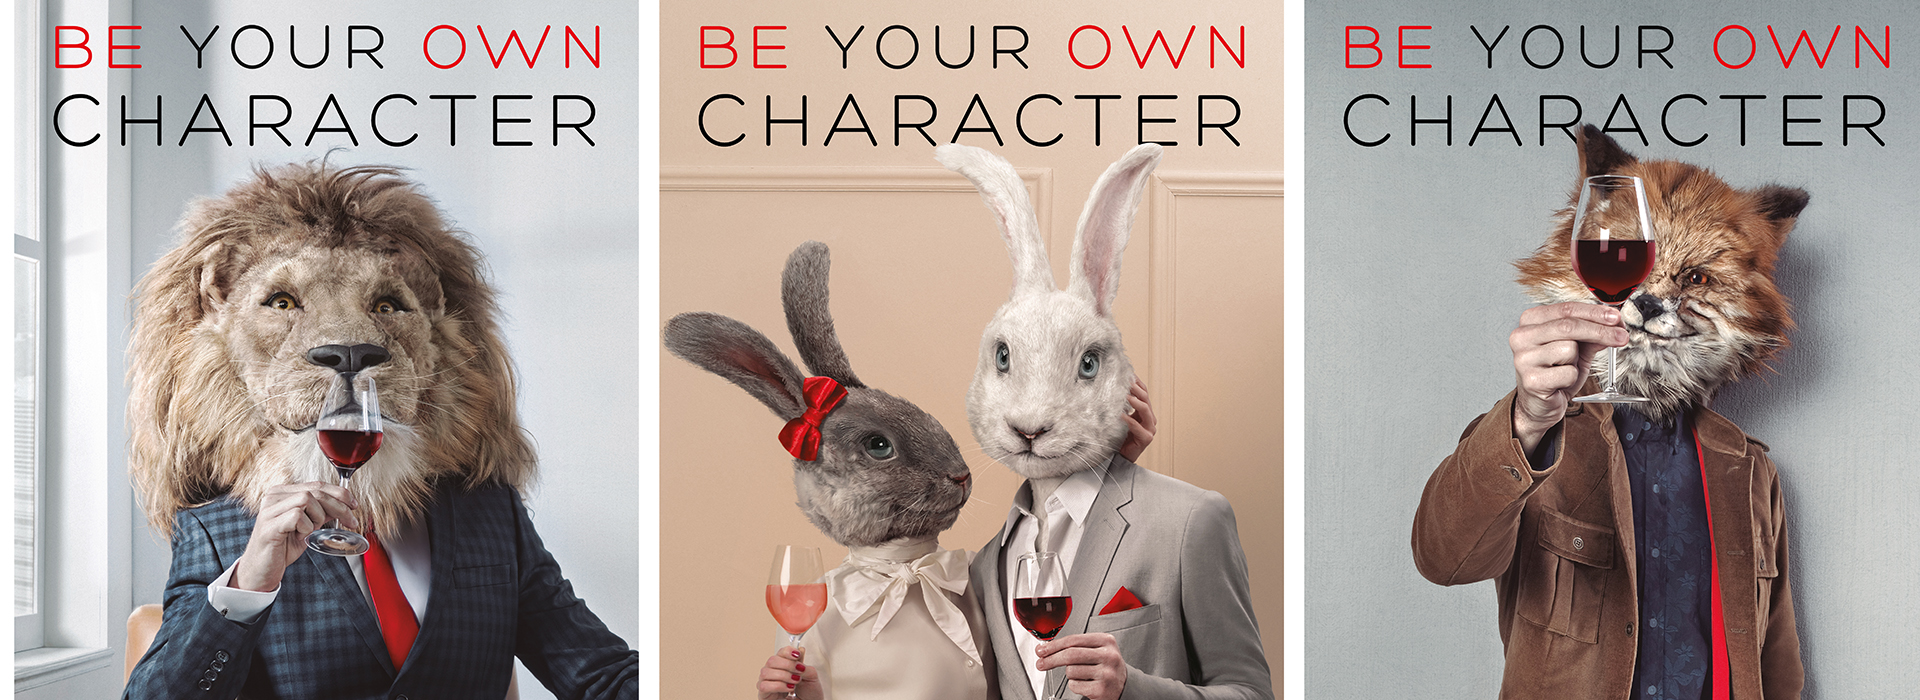 Key visual: Be You Own Character